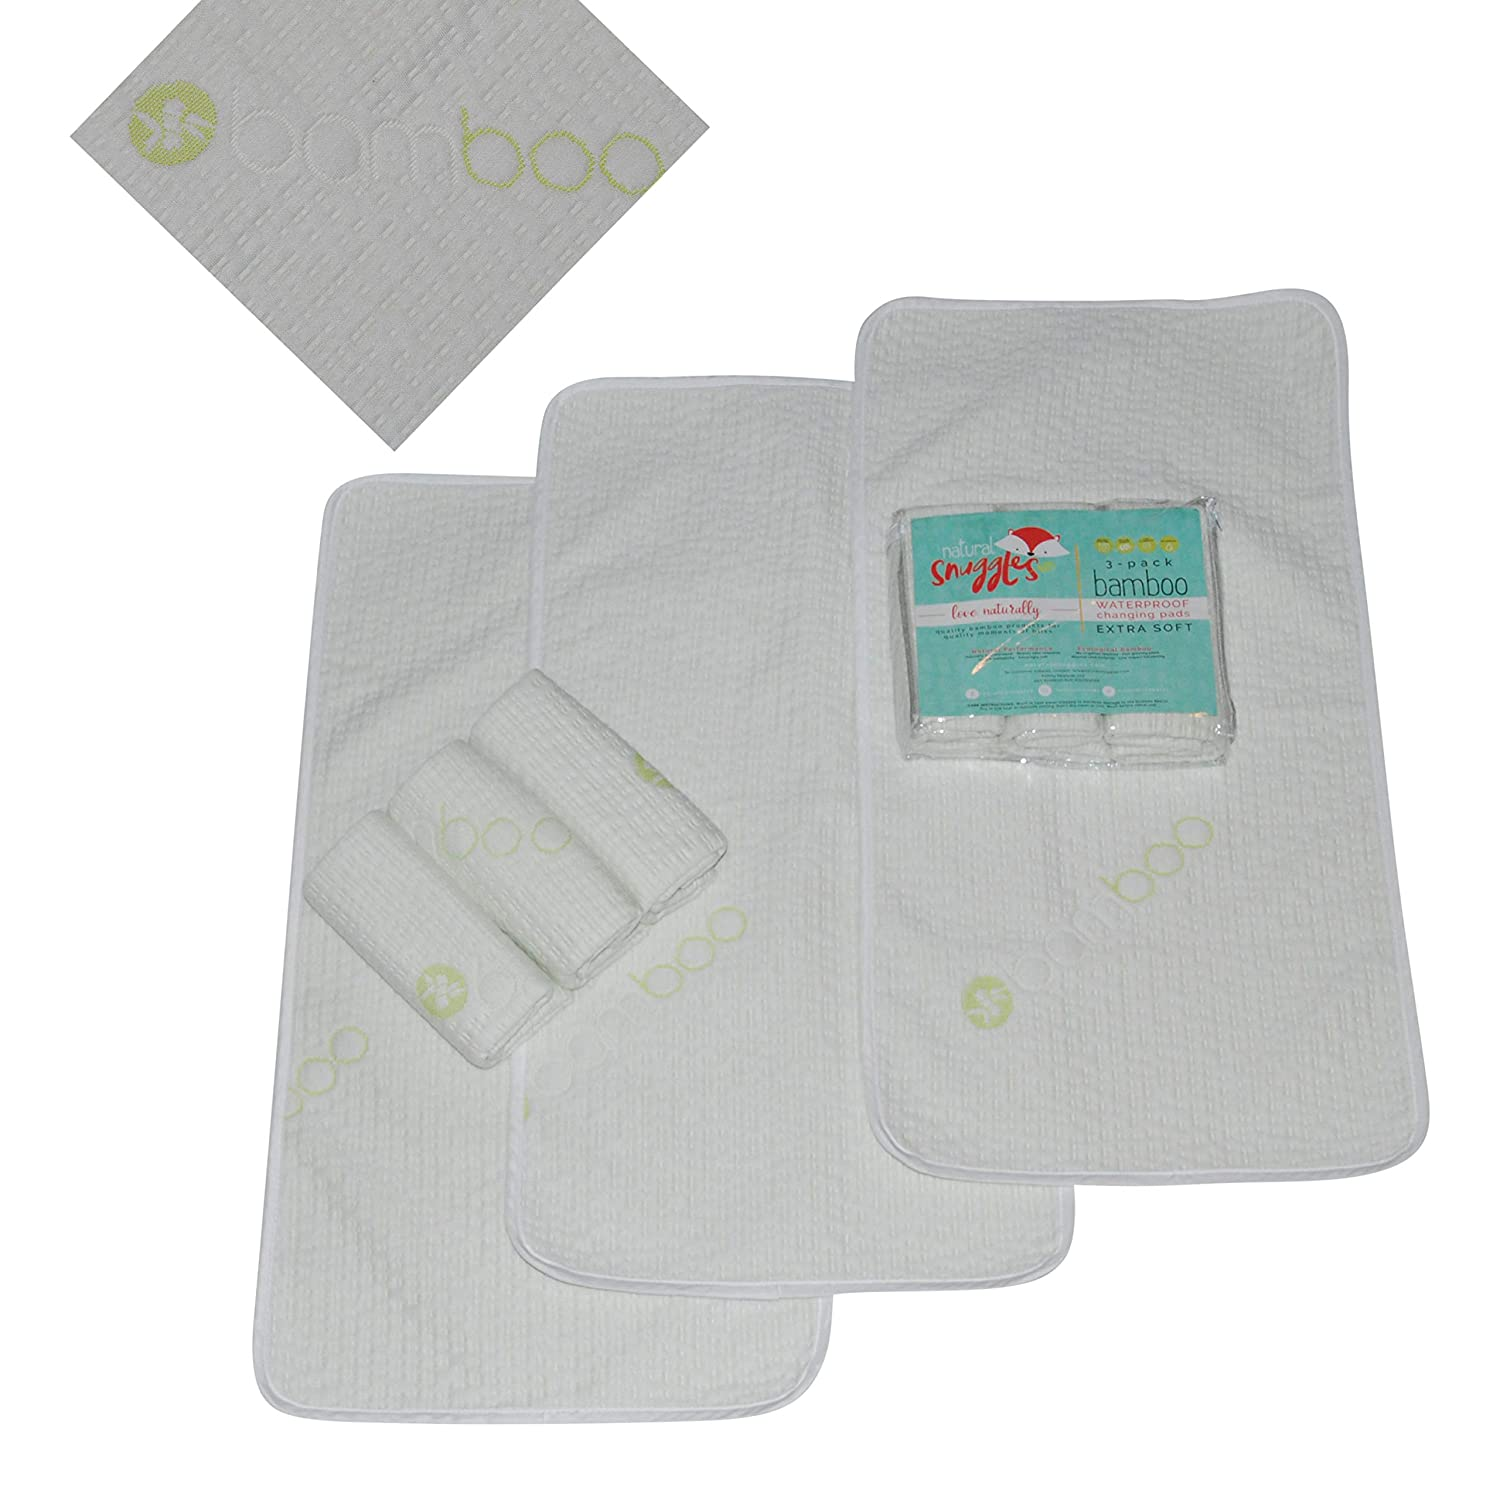 Waterproof Baby Changing Table Pads 3 Pack - Extra Soft Bamboo Baby Diaper Changing Liners -...